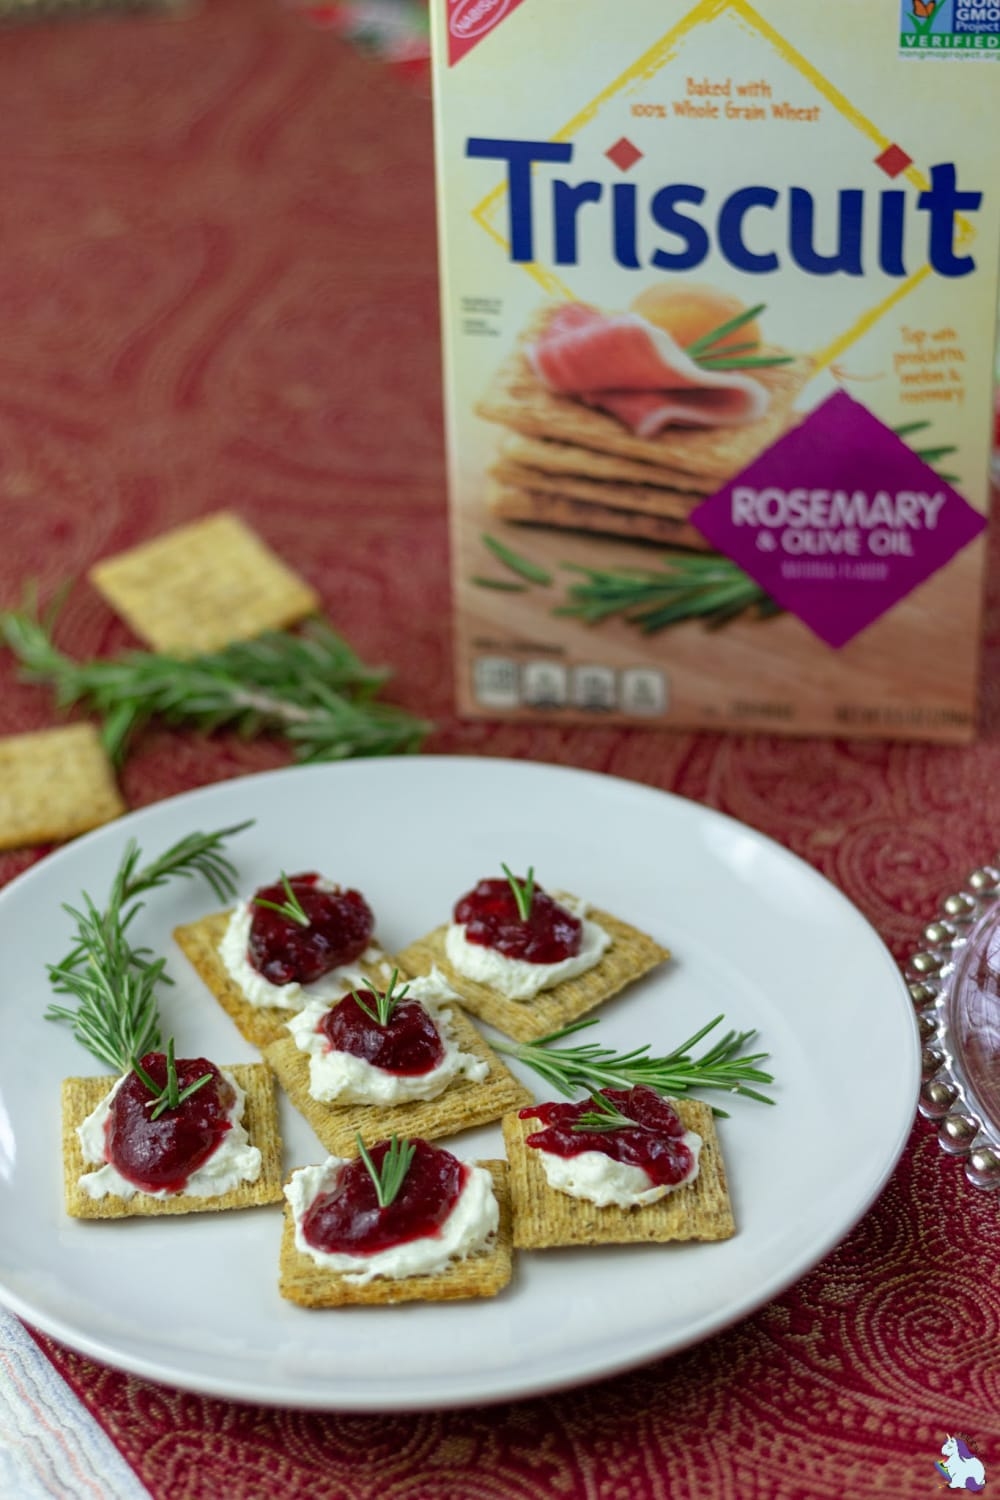 Triscuits with cranberry jam topping on a plate with a box of Triscuits